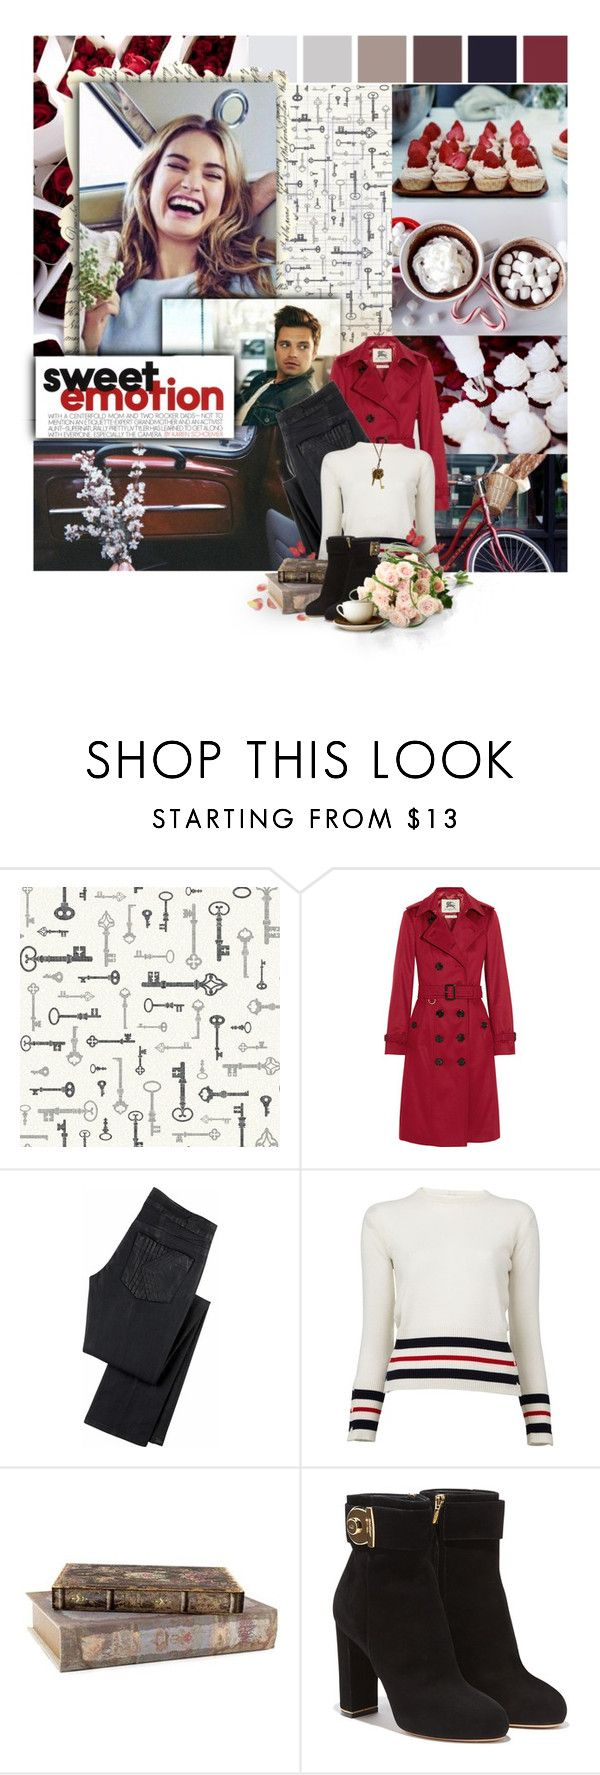 """Grow old with me, let us share what we see and, oh, the best it could be, just you and I"" by dashingpirate ❤ liked on Polyvore featuring York Wallcoverings, Dollhouse, Les Petites Choses, Sebastian Professional, Burberry, K Karl Lagerfeld, Thom Browne, Salvatore Ferragamo, Nexus and women's clothing"